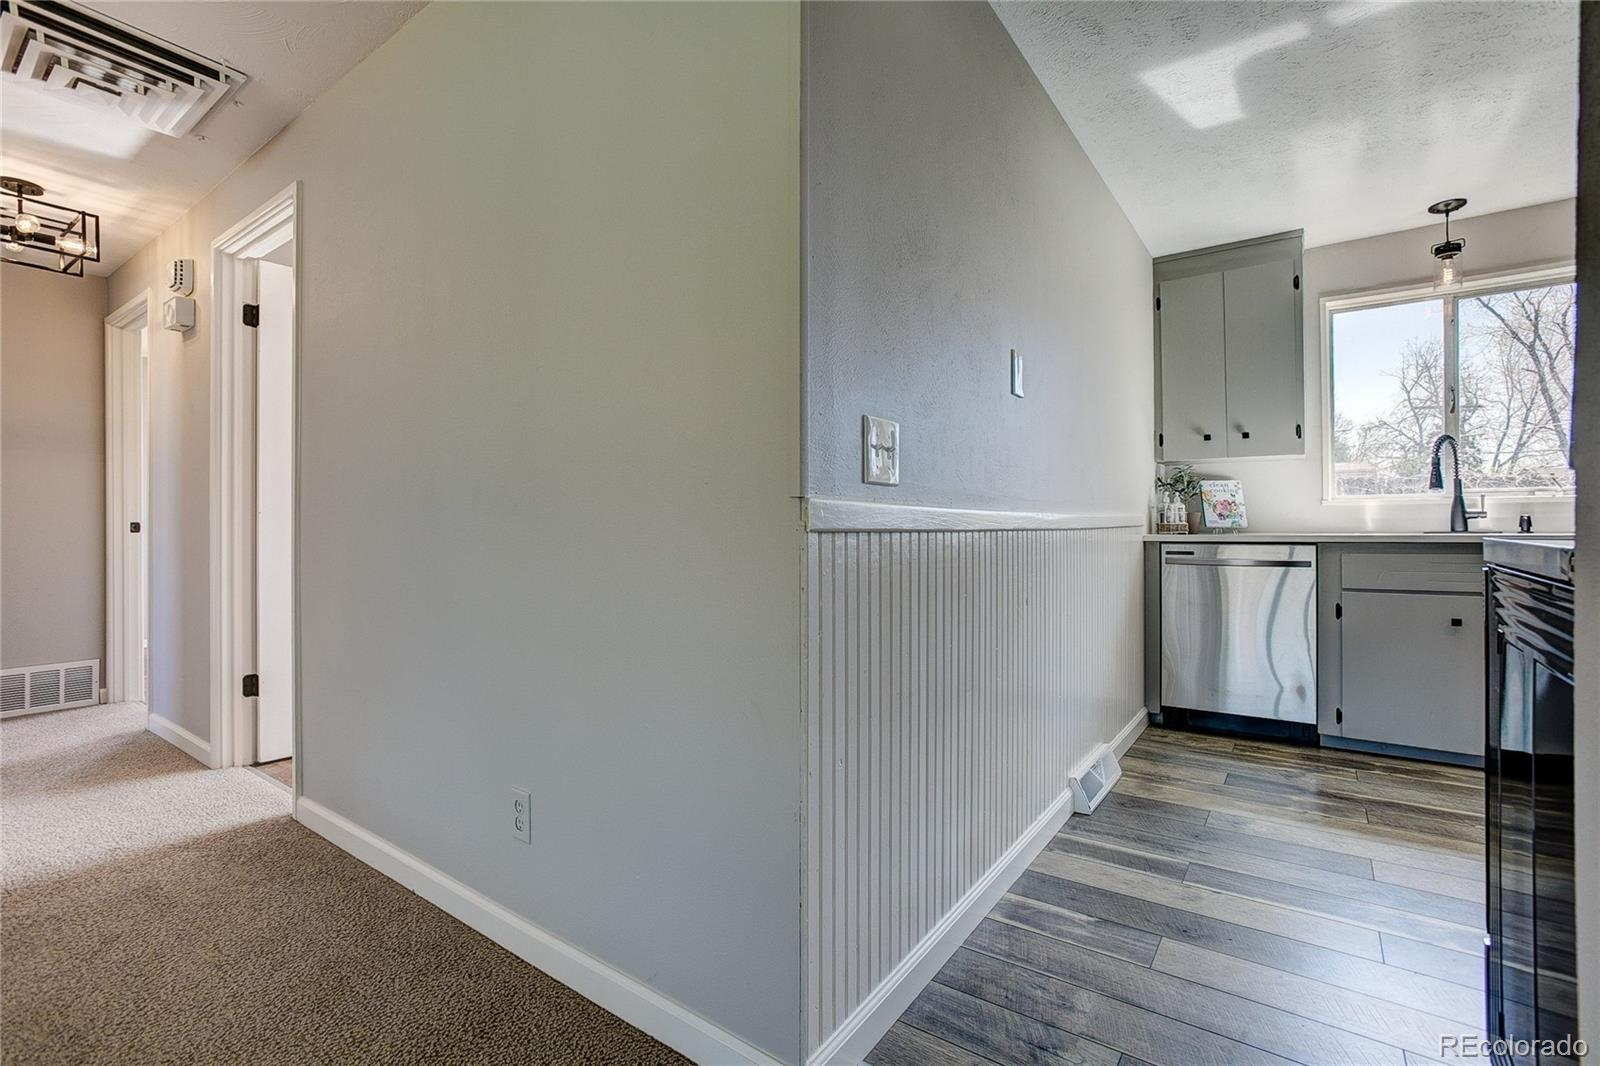 MLS# 9710462 - 14 - 1250 W 7th Ave Dr, Broomfield, CO 80020